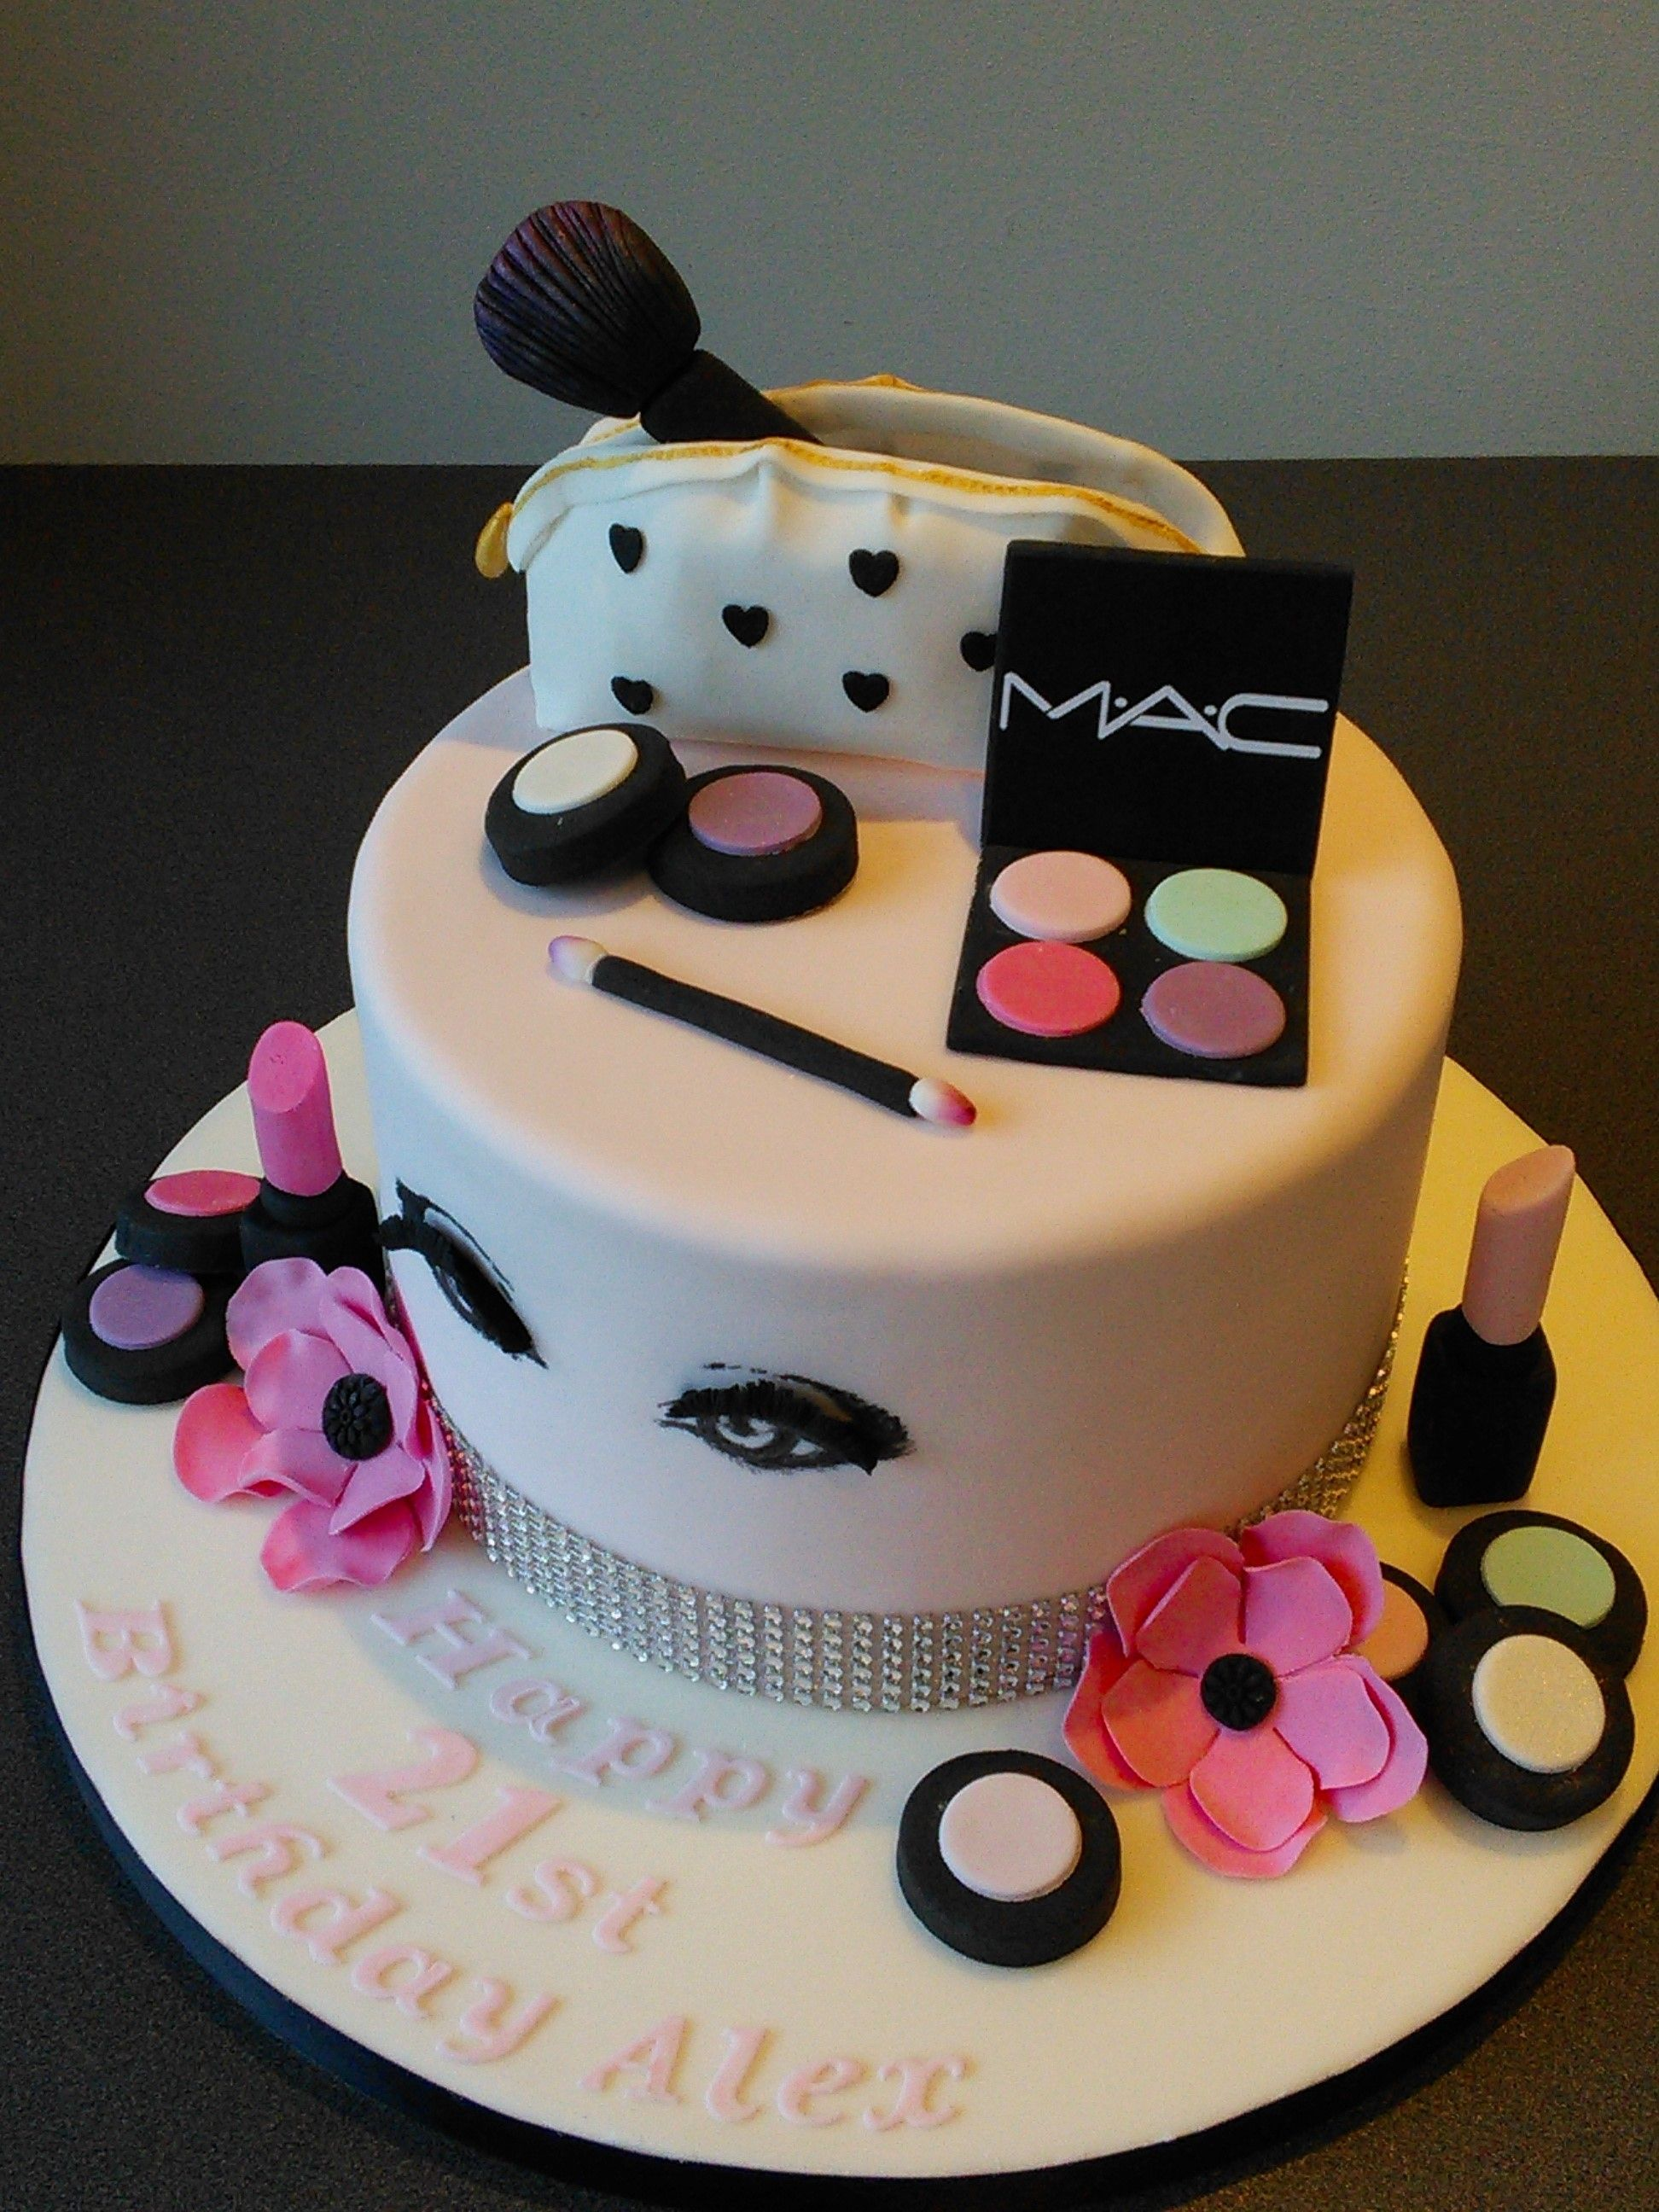 Mac Cosmetics 21st Birthday Cake Make Bag With Pink Flowers And Hand Drawn Eyes False